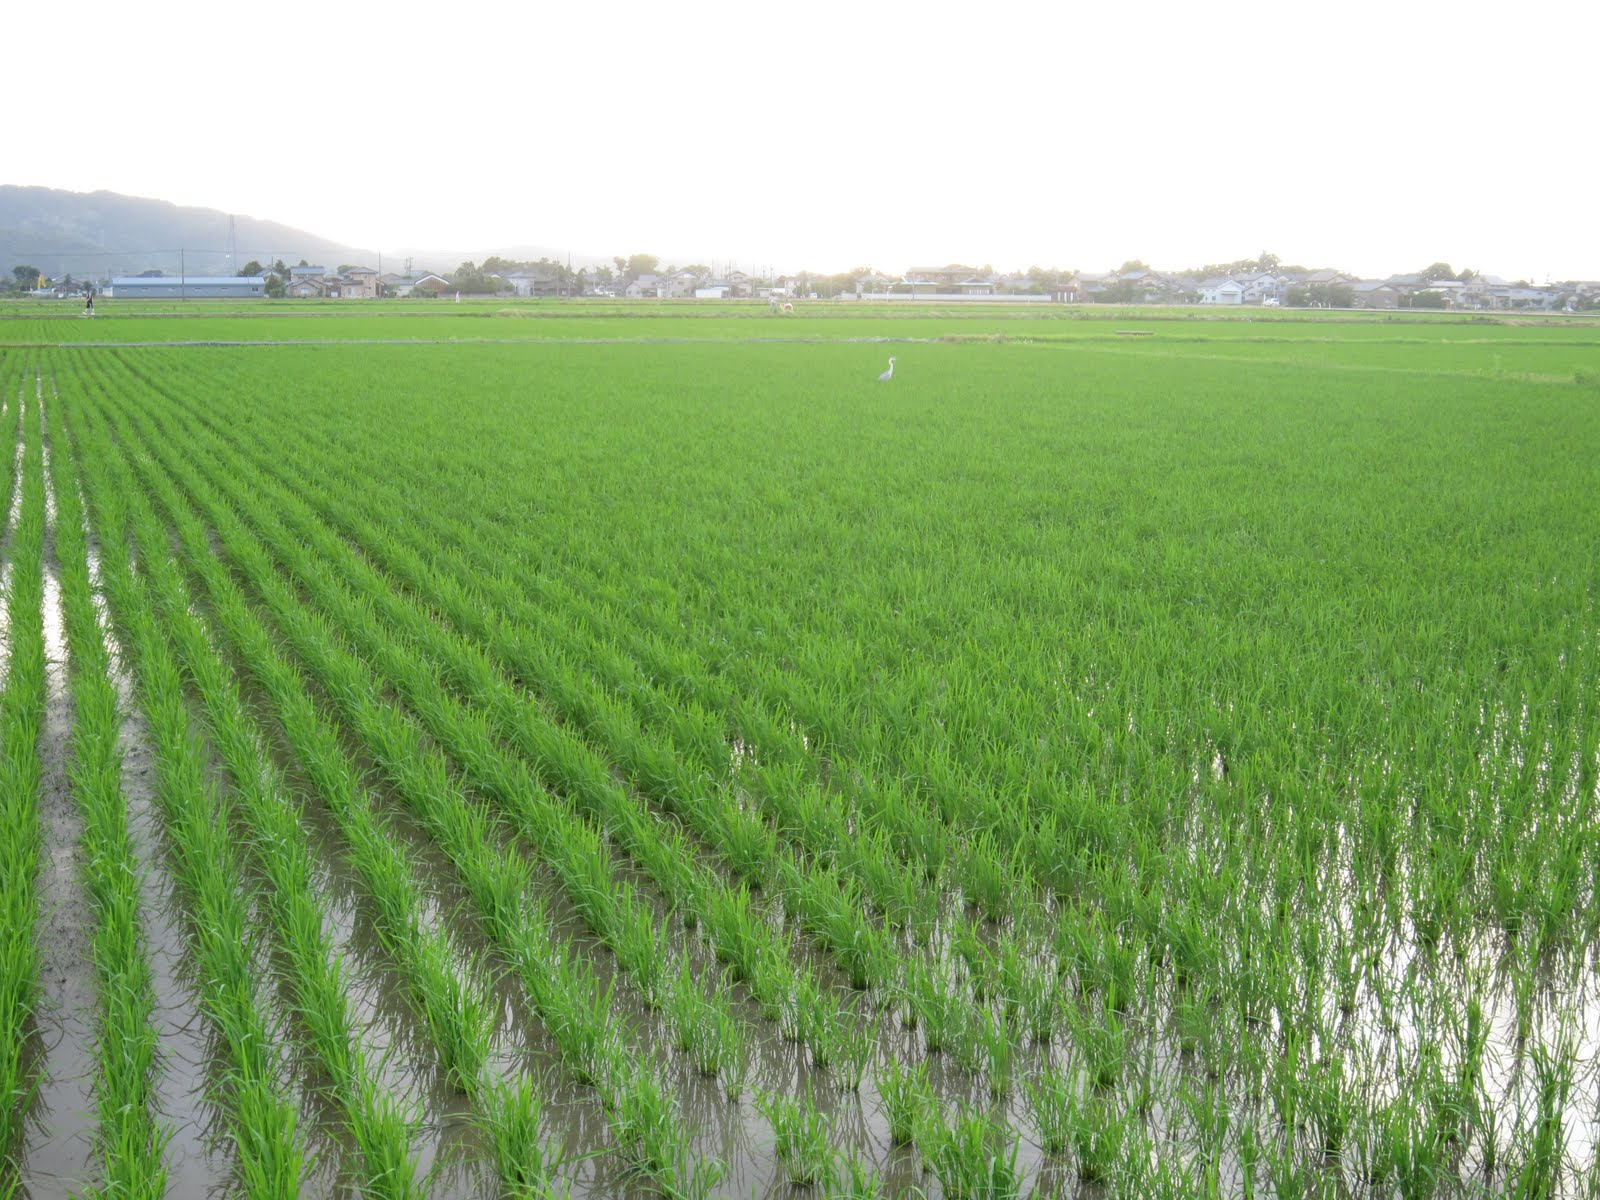 rice fields - photo #5